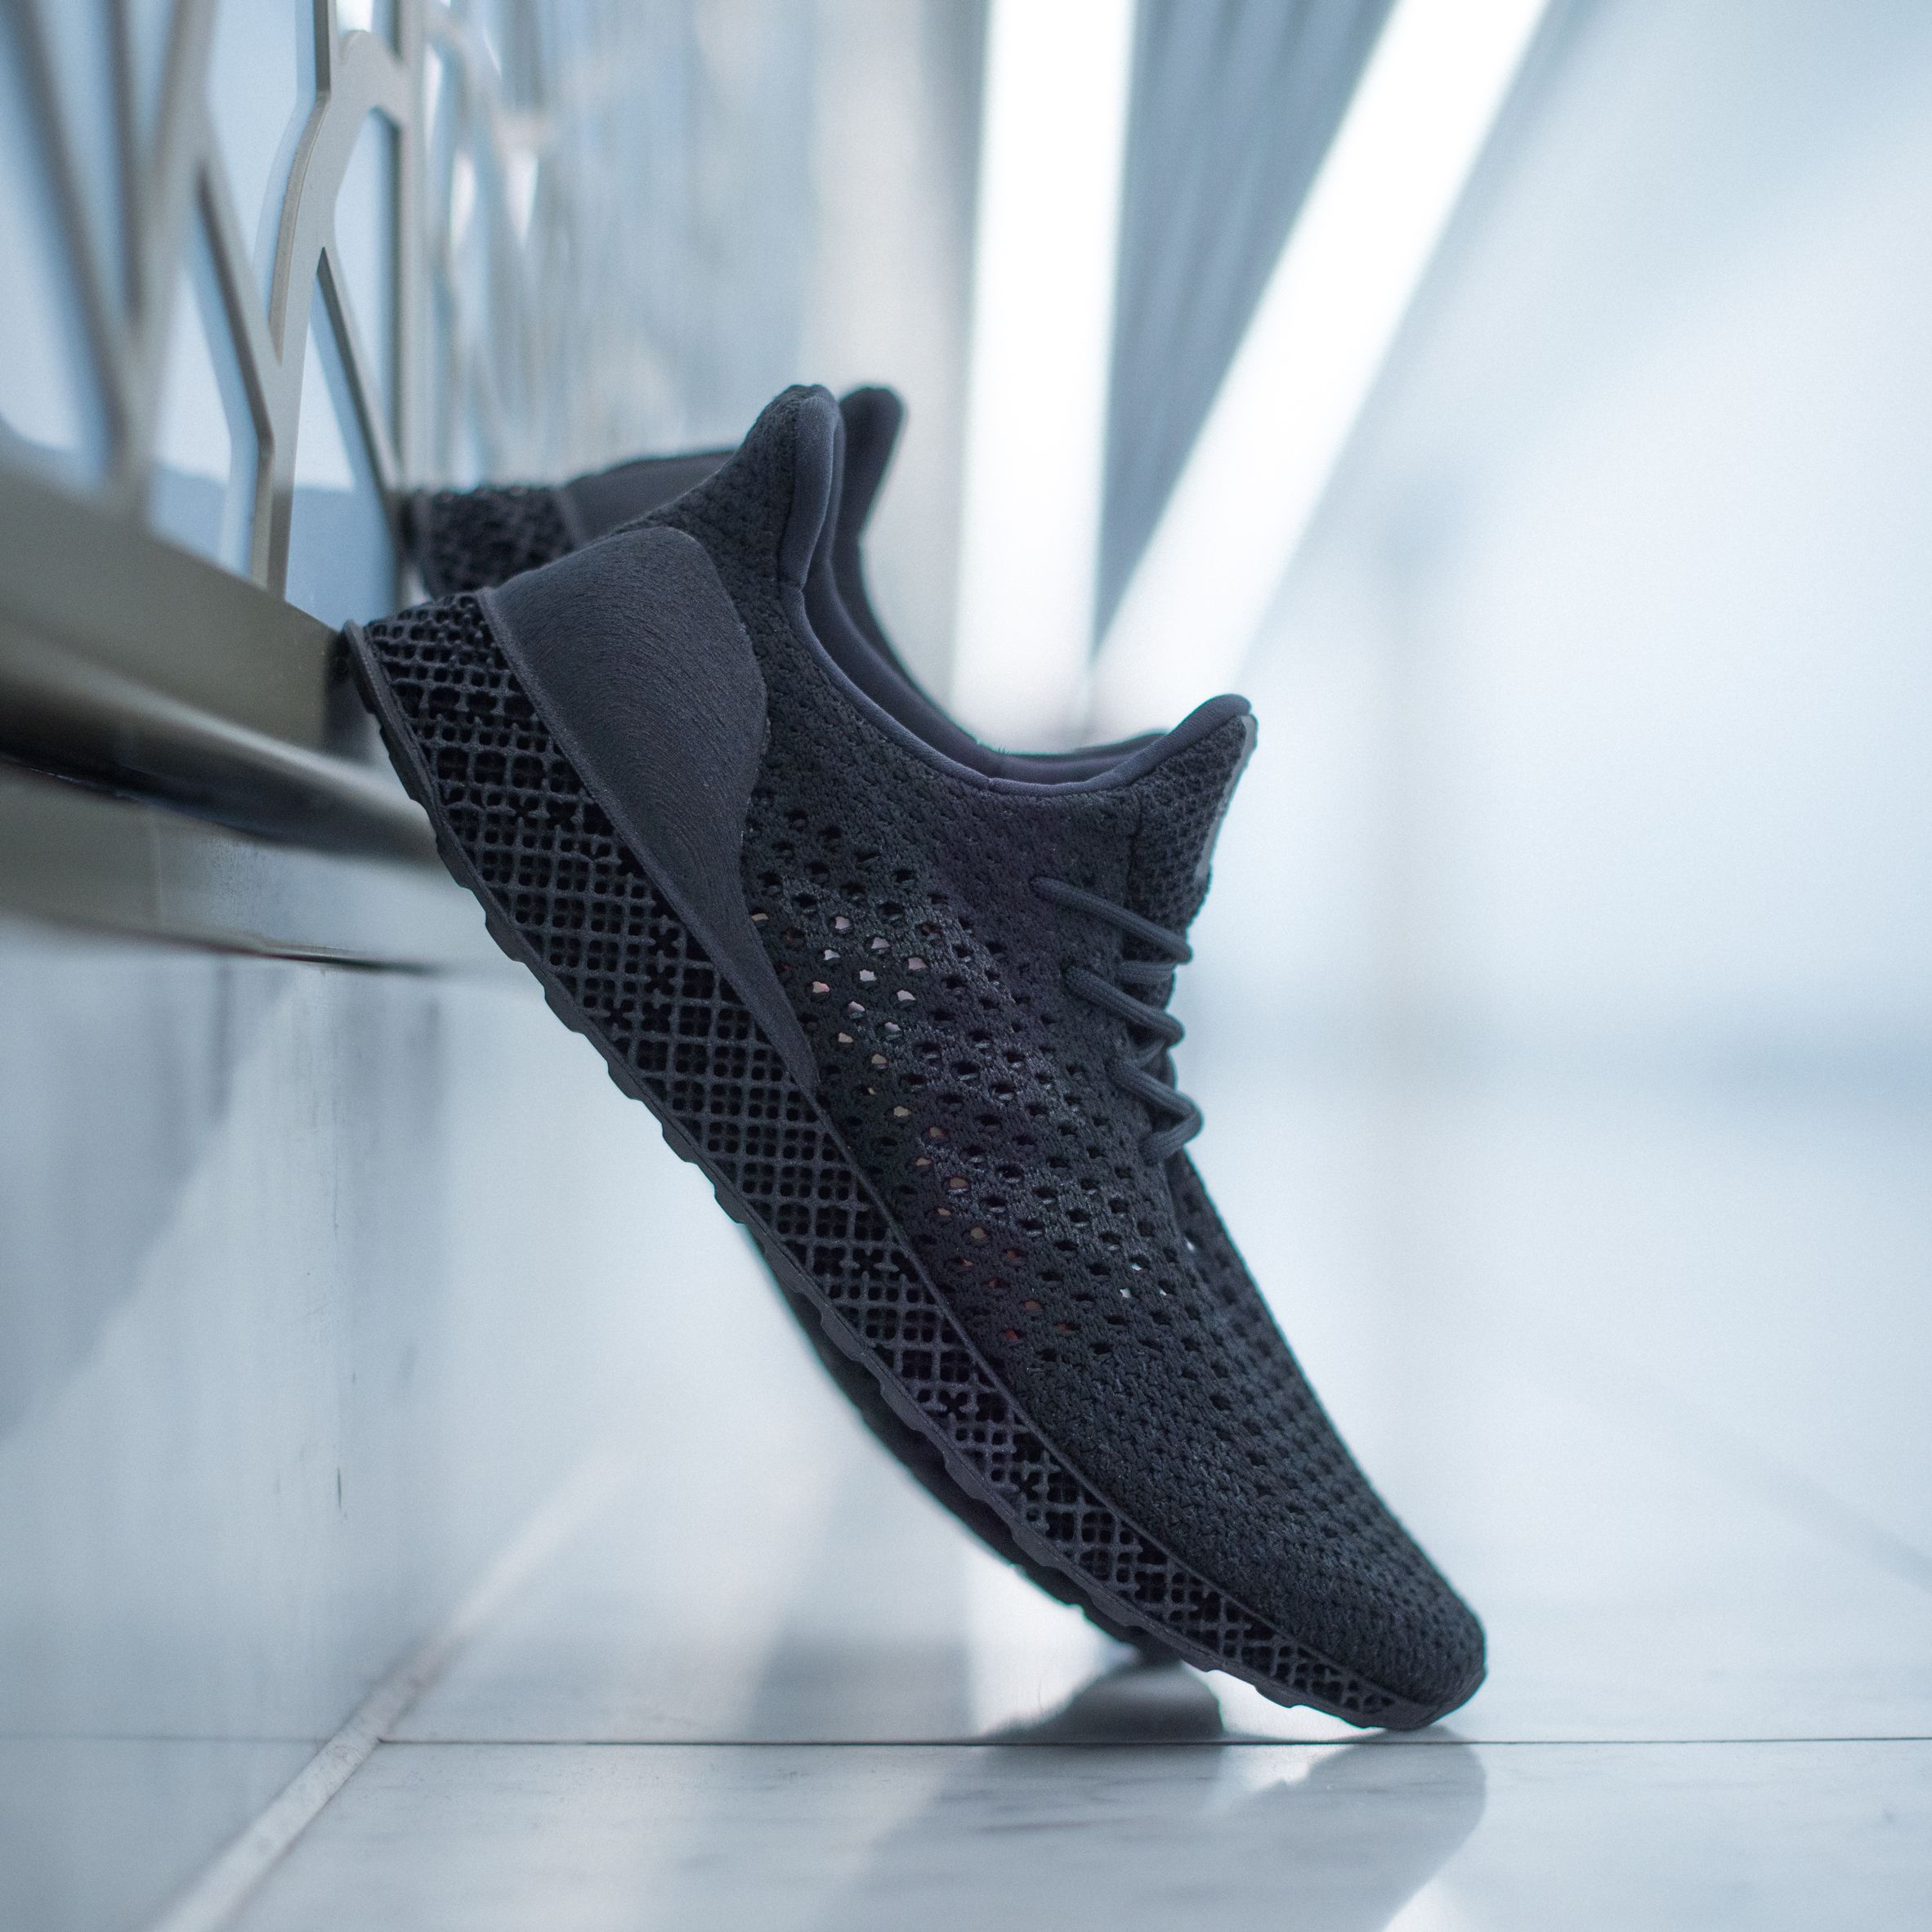 free shipping 17d5c 38d8e 3D-printed Adidas trainers go on sale httpift.tt2hwruxZ